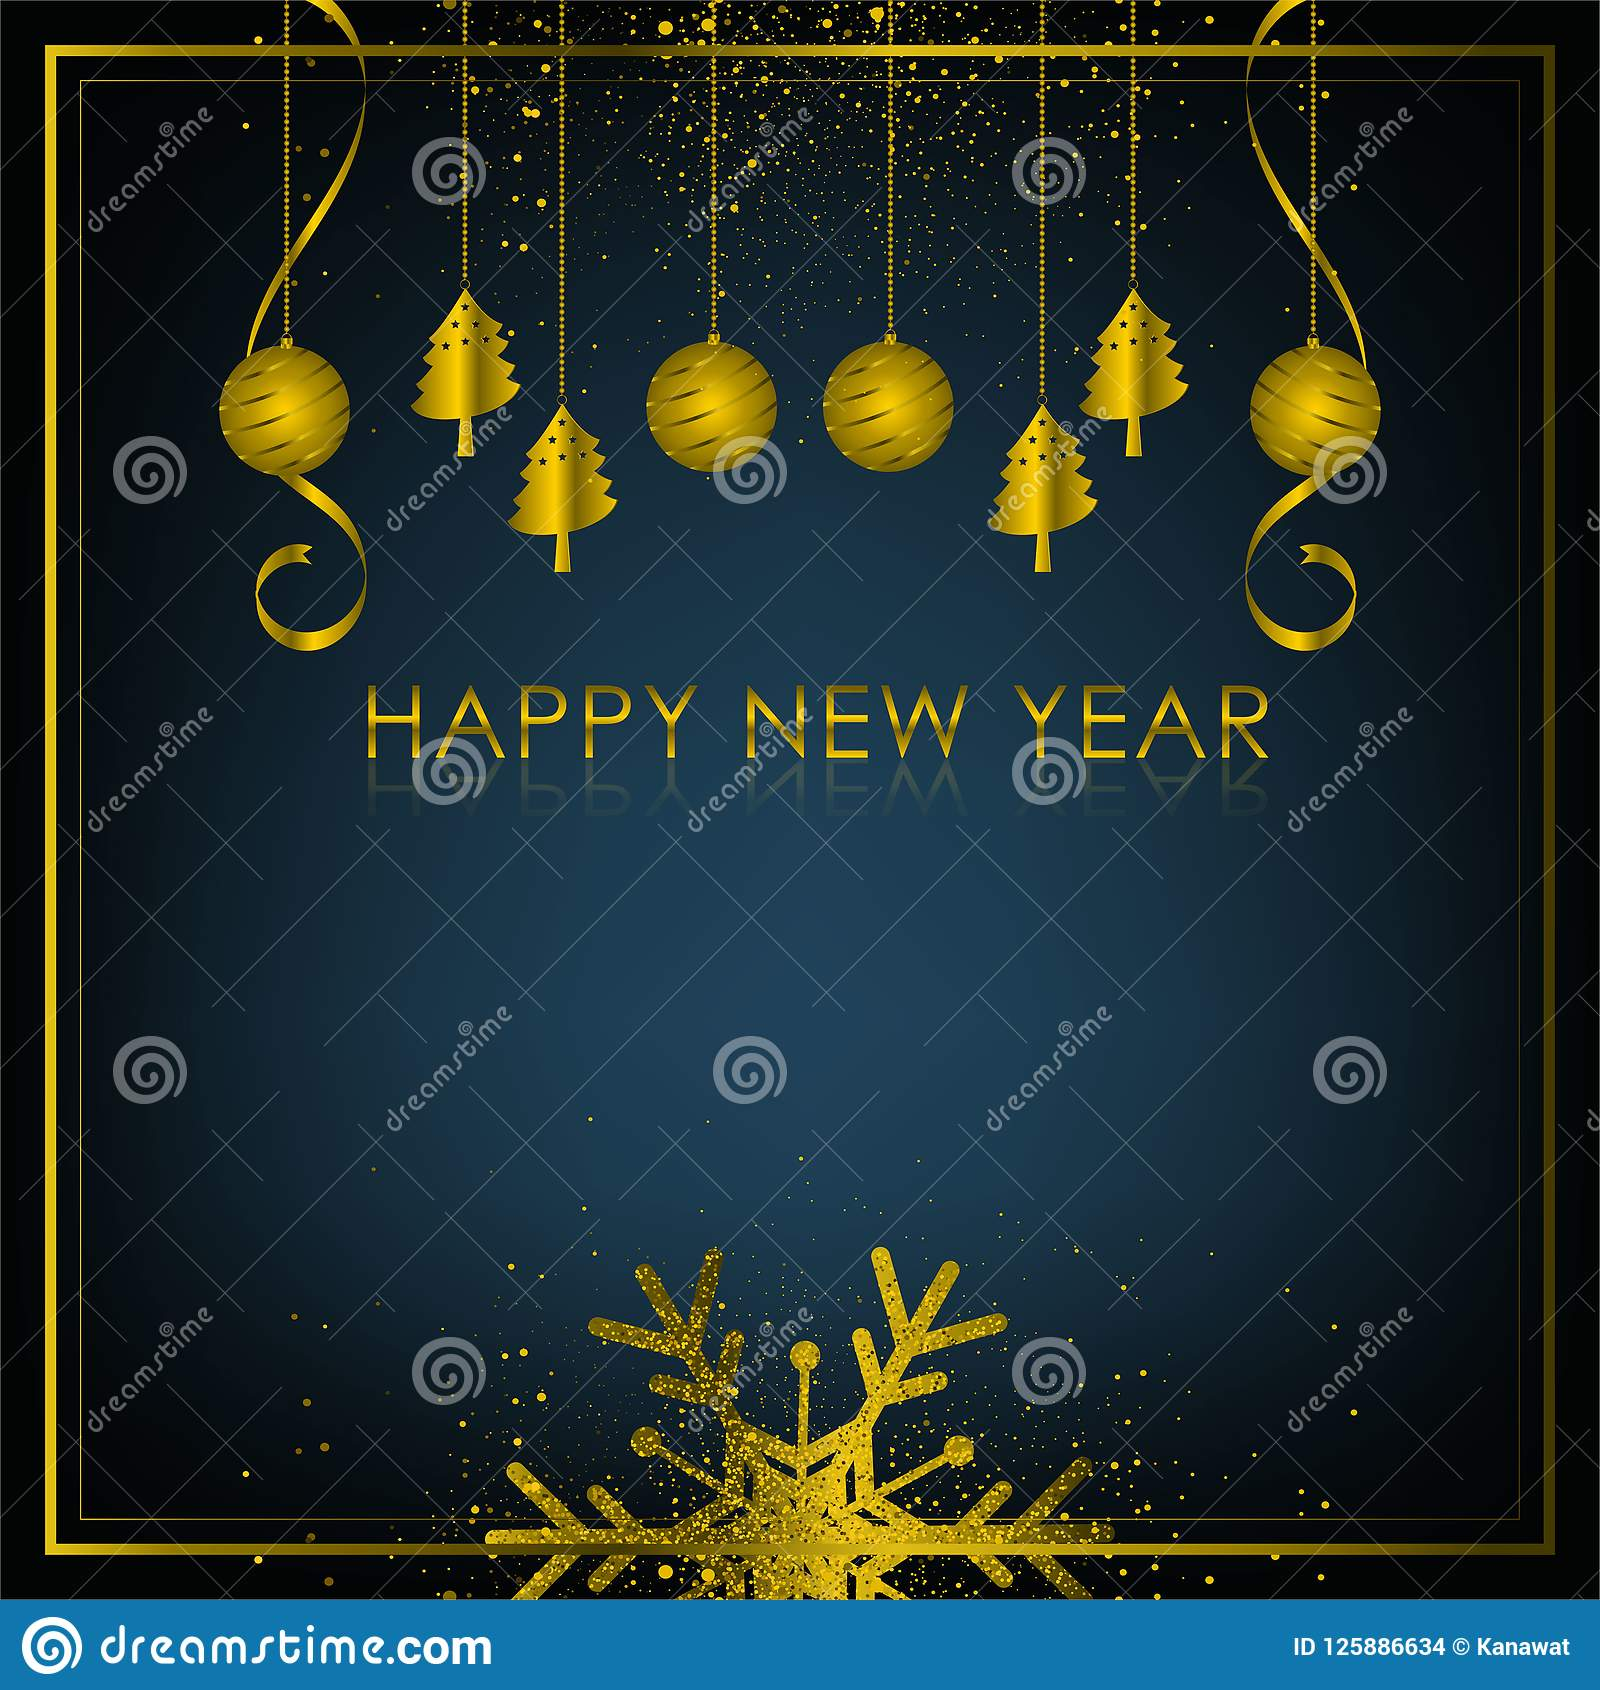 Christmas Season 2019 Gold And Black Background With Snowflake And Ball For Christmas